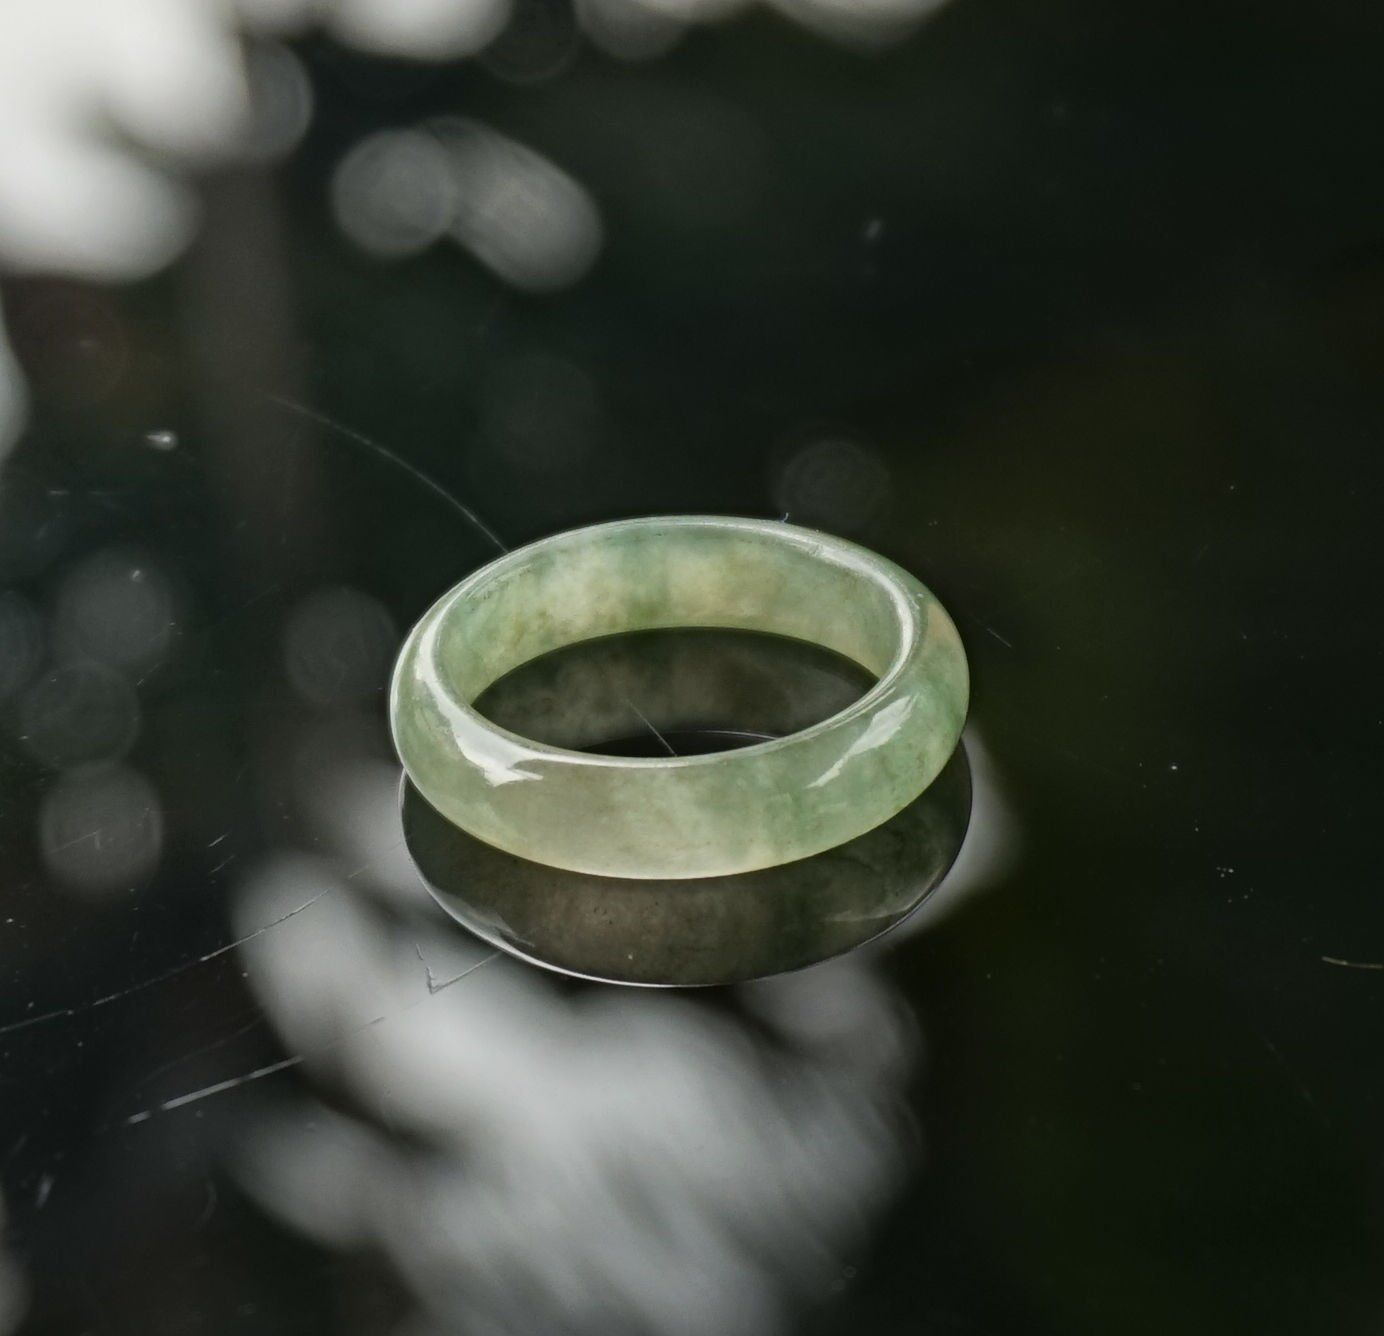 100% Real Natural Untreated Translucent Light Green Jadeite Jade Thin Ring 7